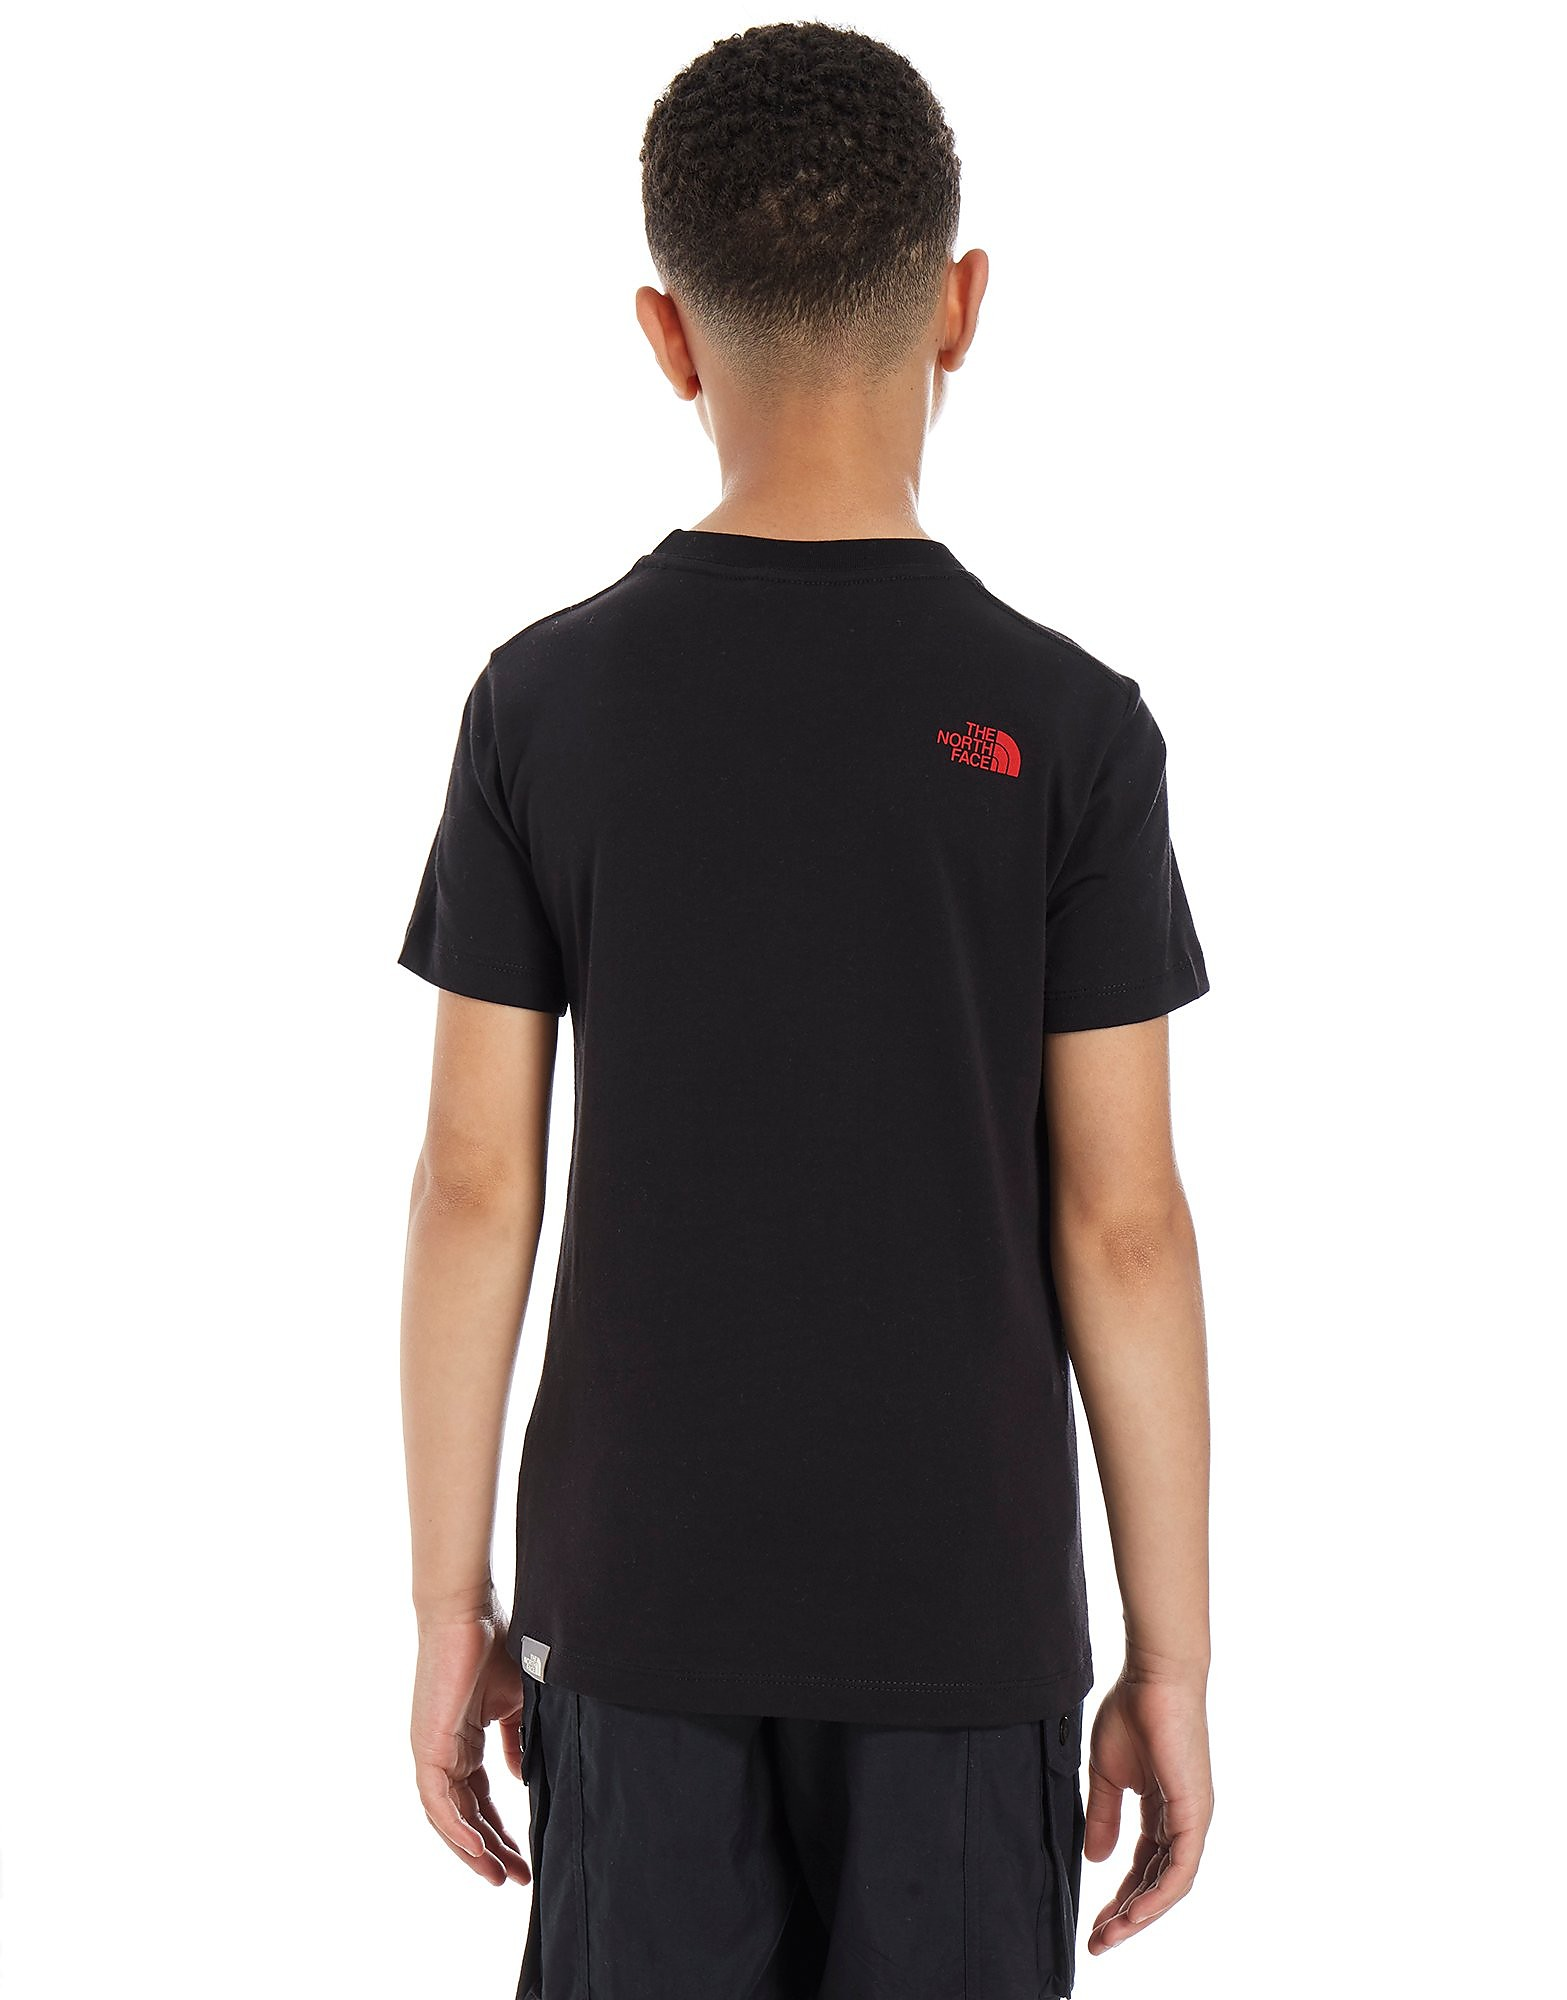 The North Face Ascent T-Shirt voor tieners